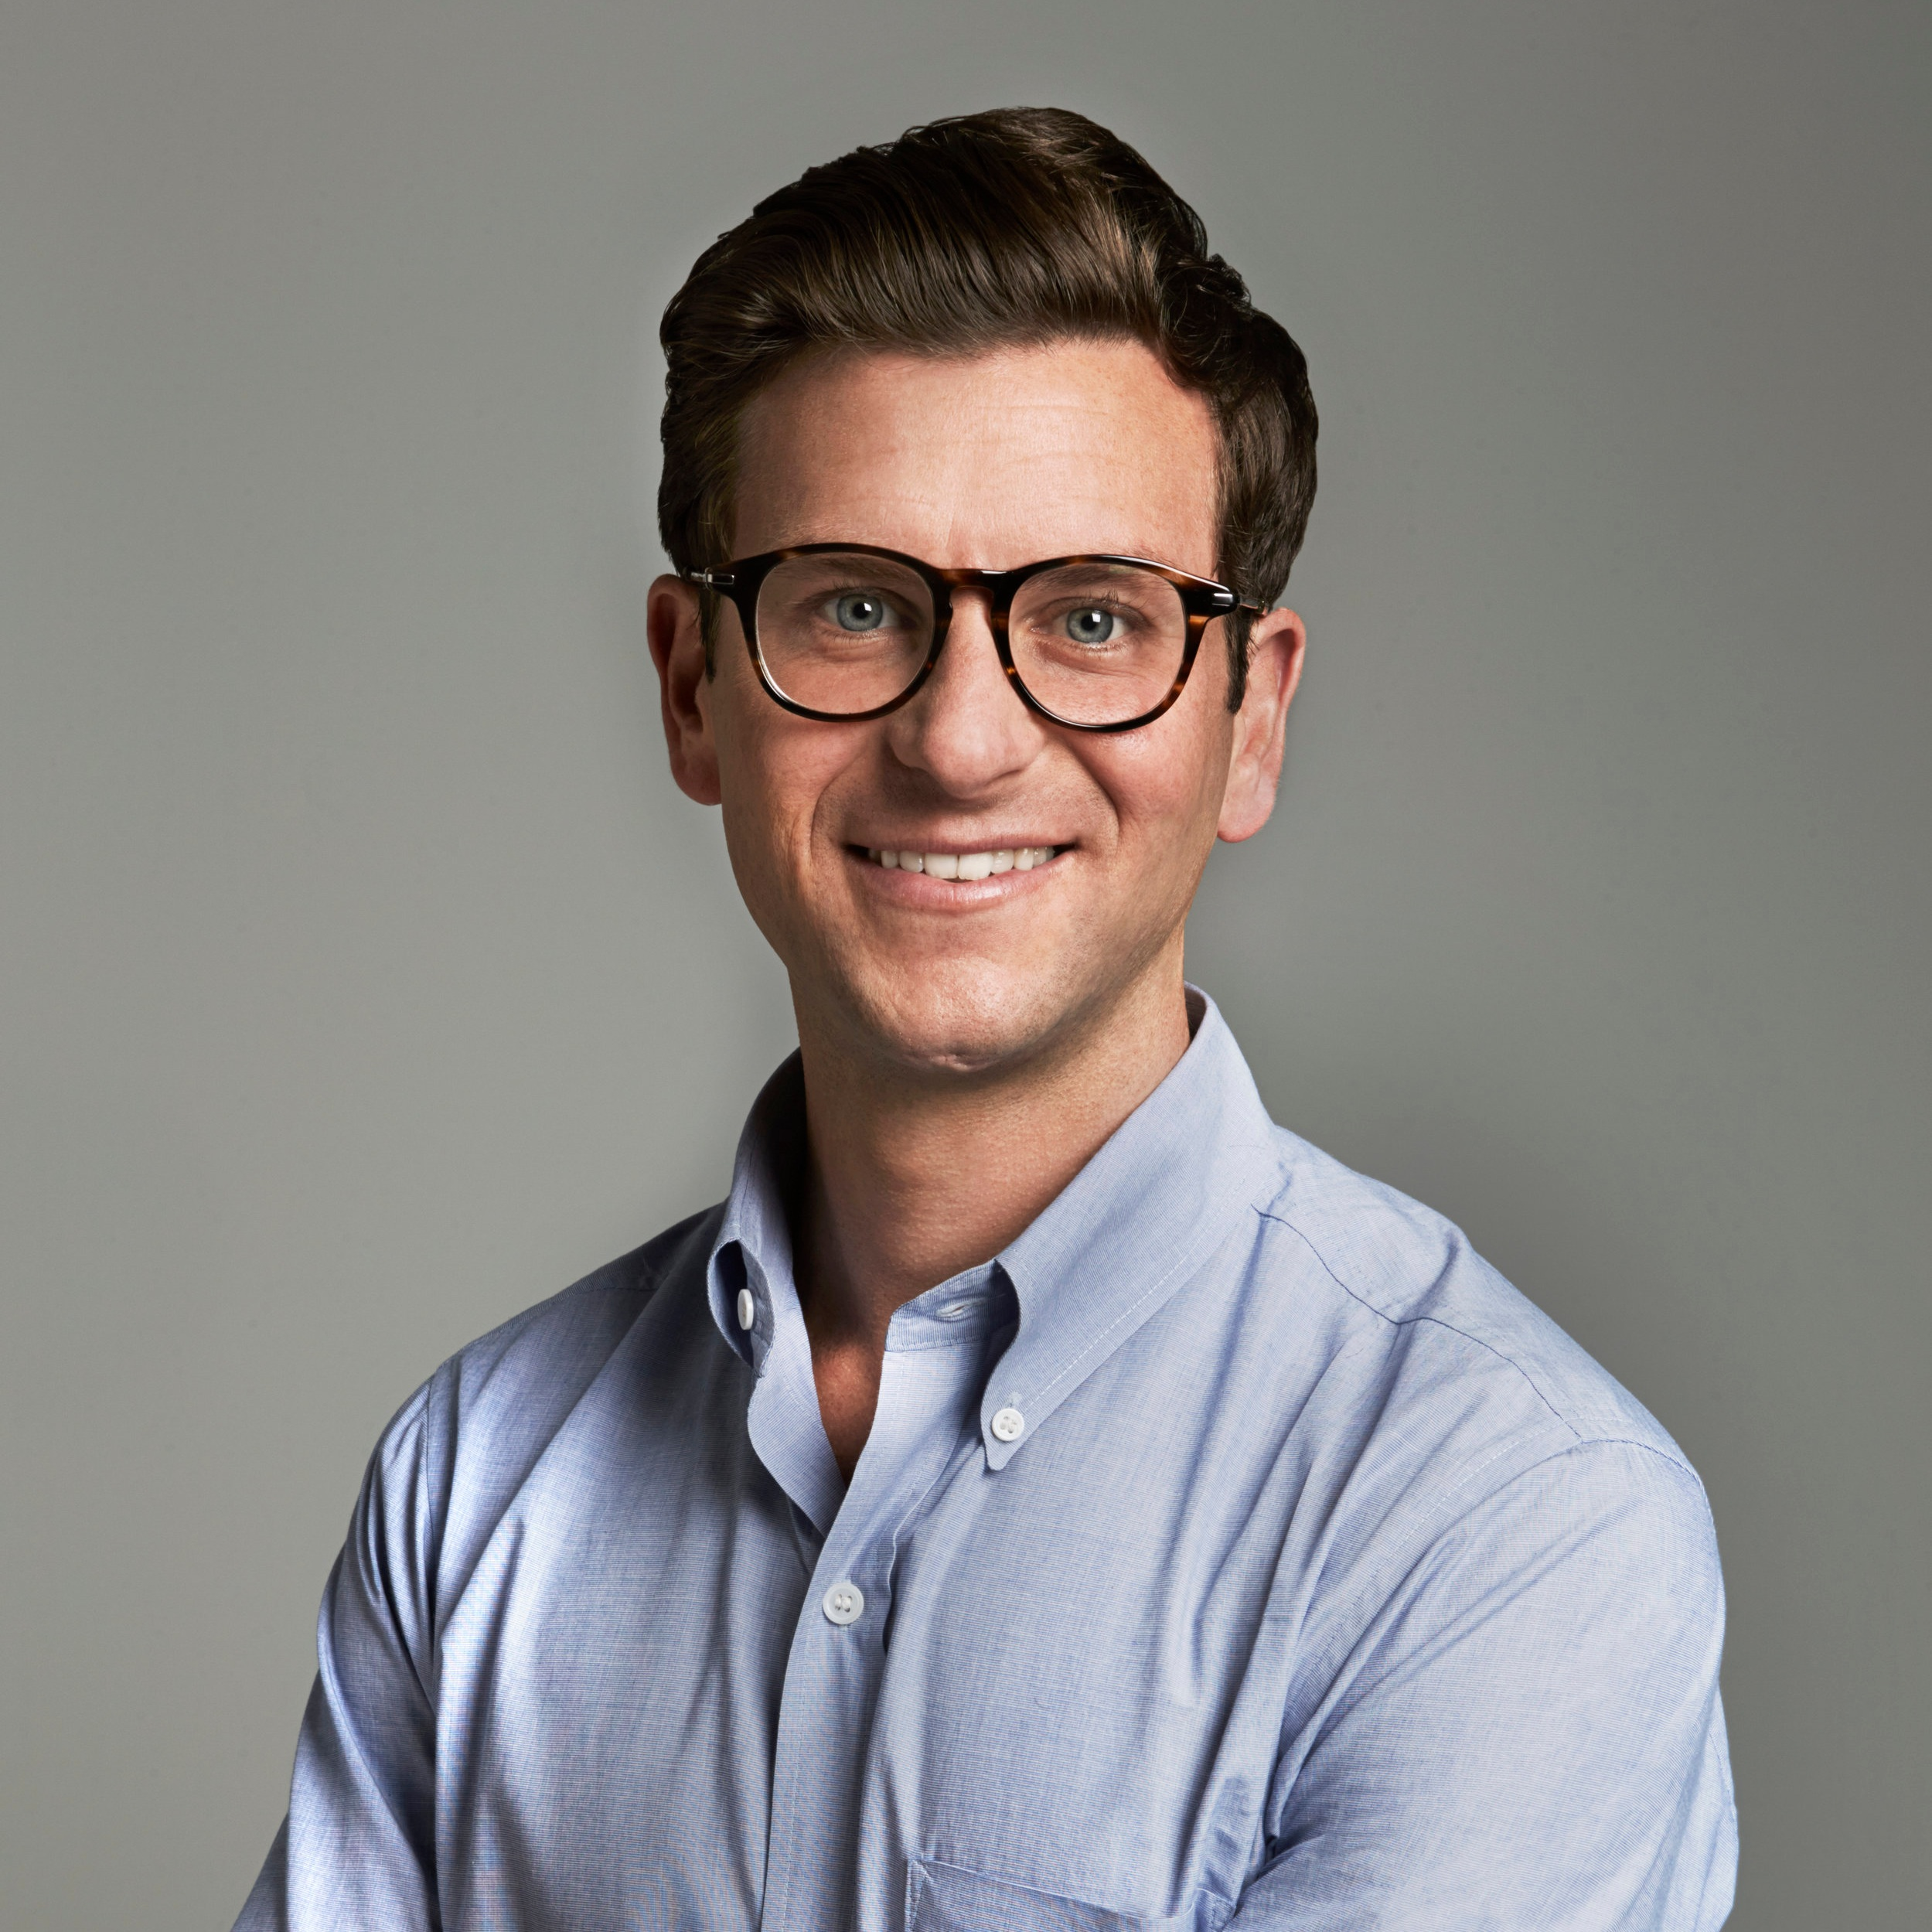 Dave Gilboa - Co-Founder and Co-CEO of Warby Parker